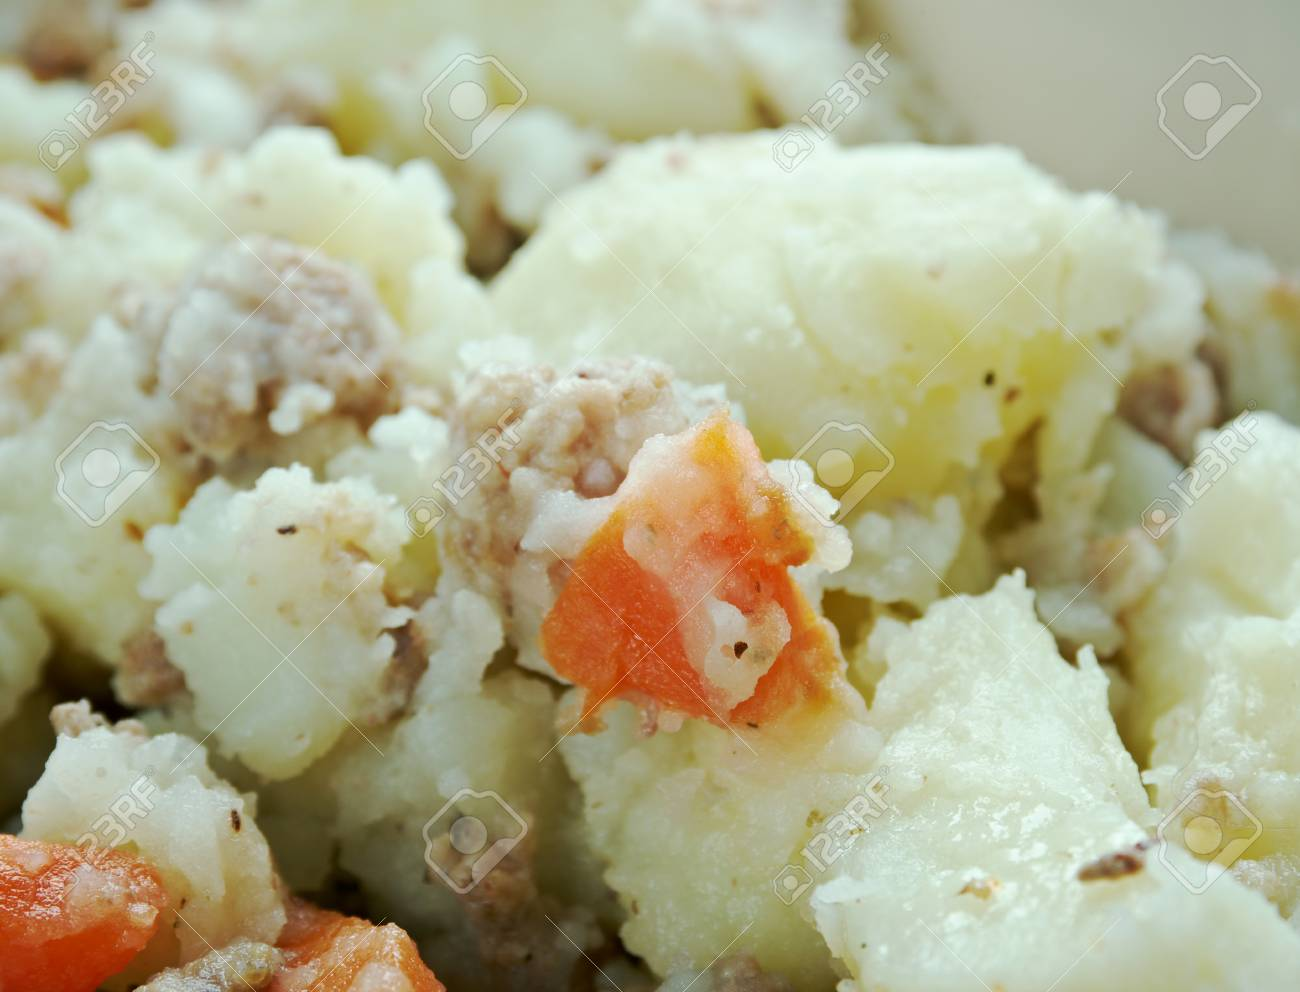 Stovies - Scottish dish based on potatoes contains potatoes with,